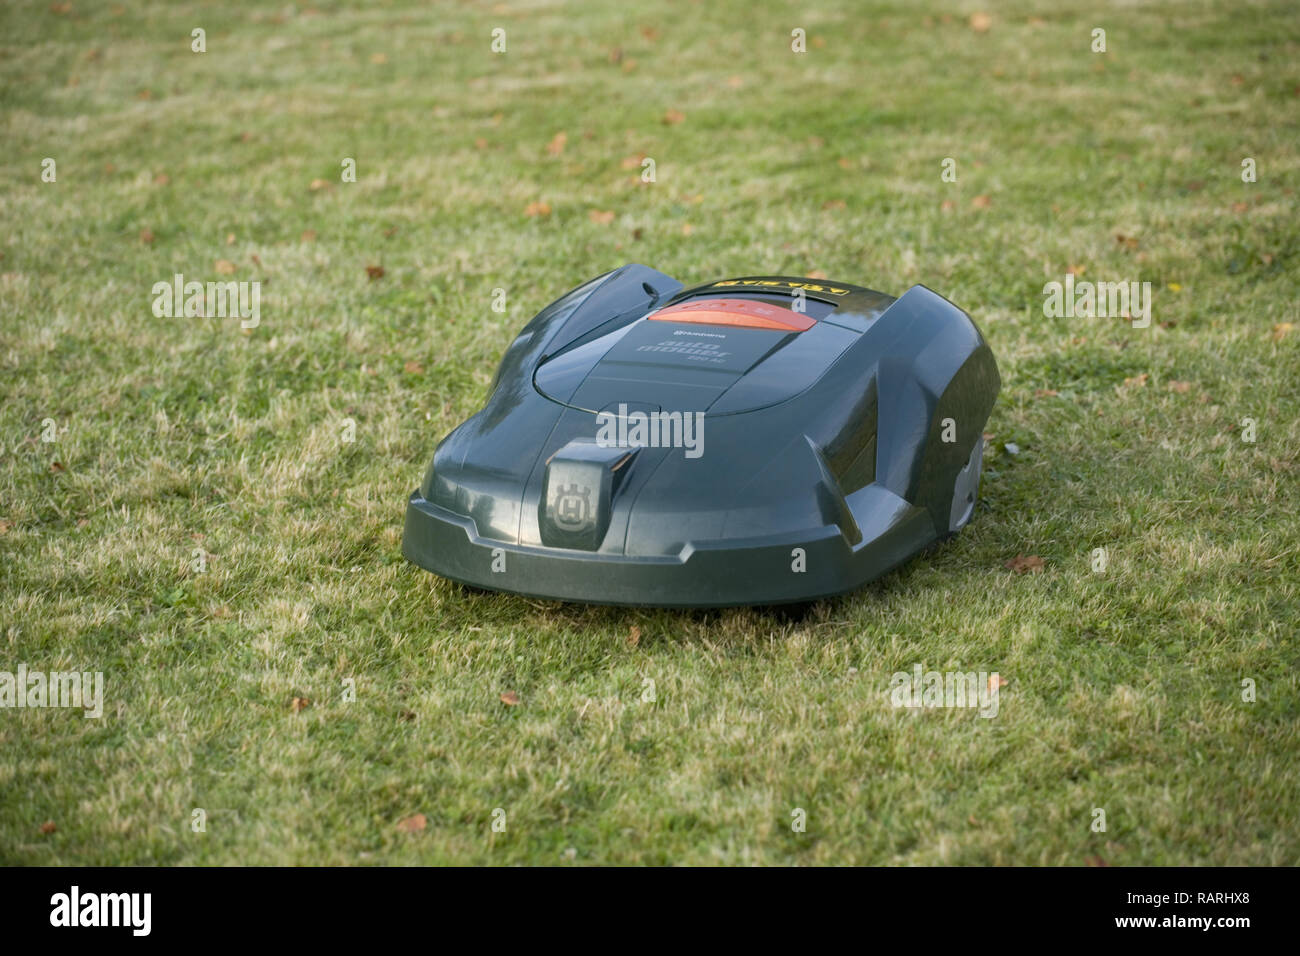 Automatic robot lawn mower cutting grass and seen from th top front - Stock Image